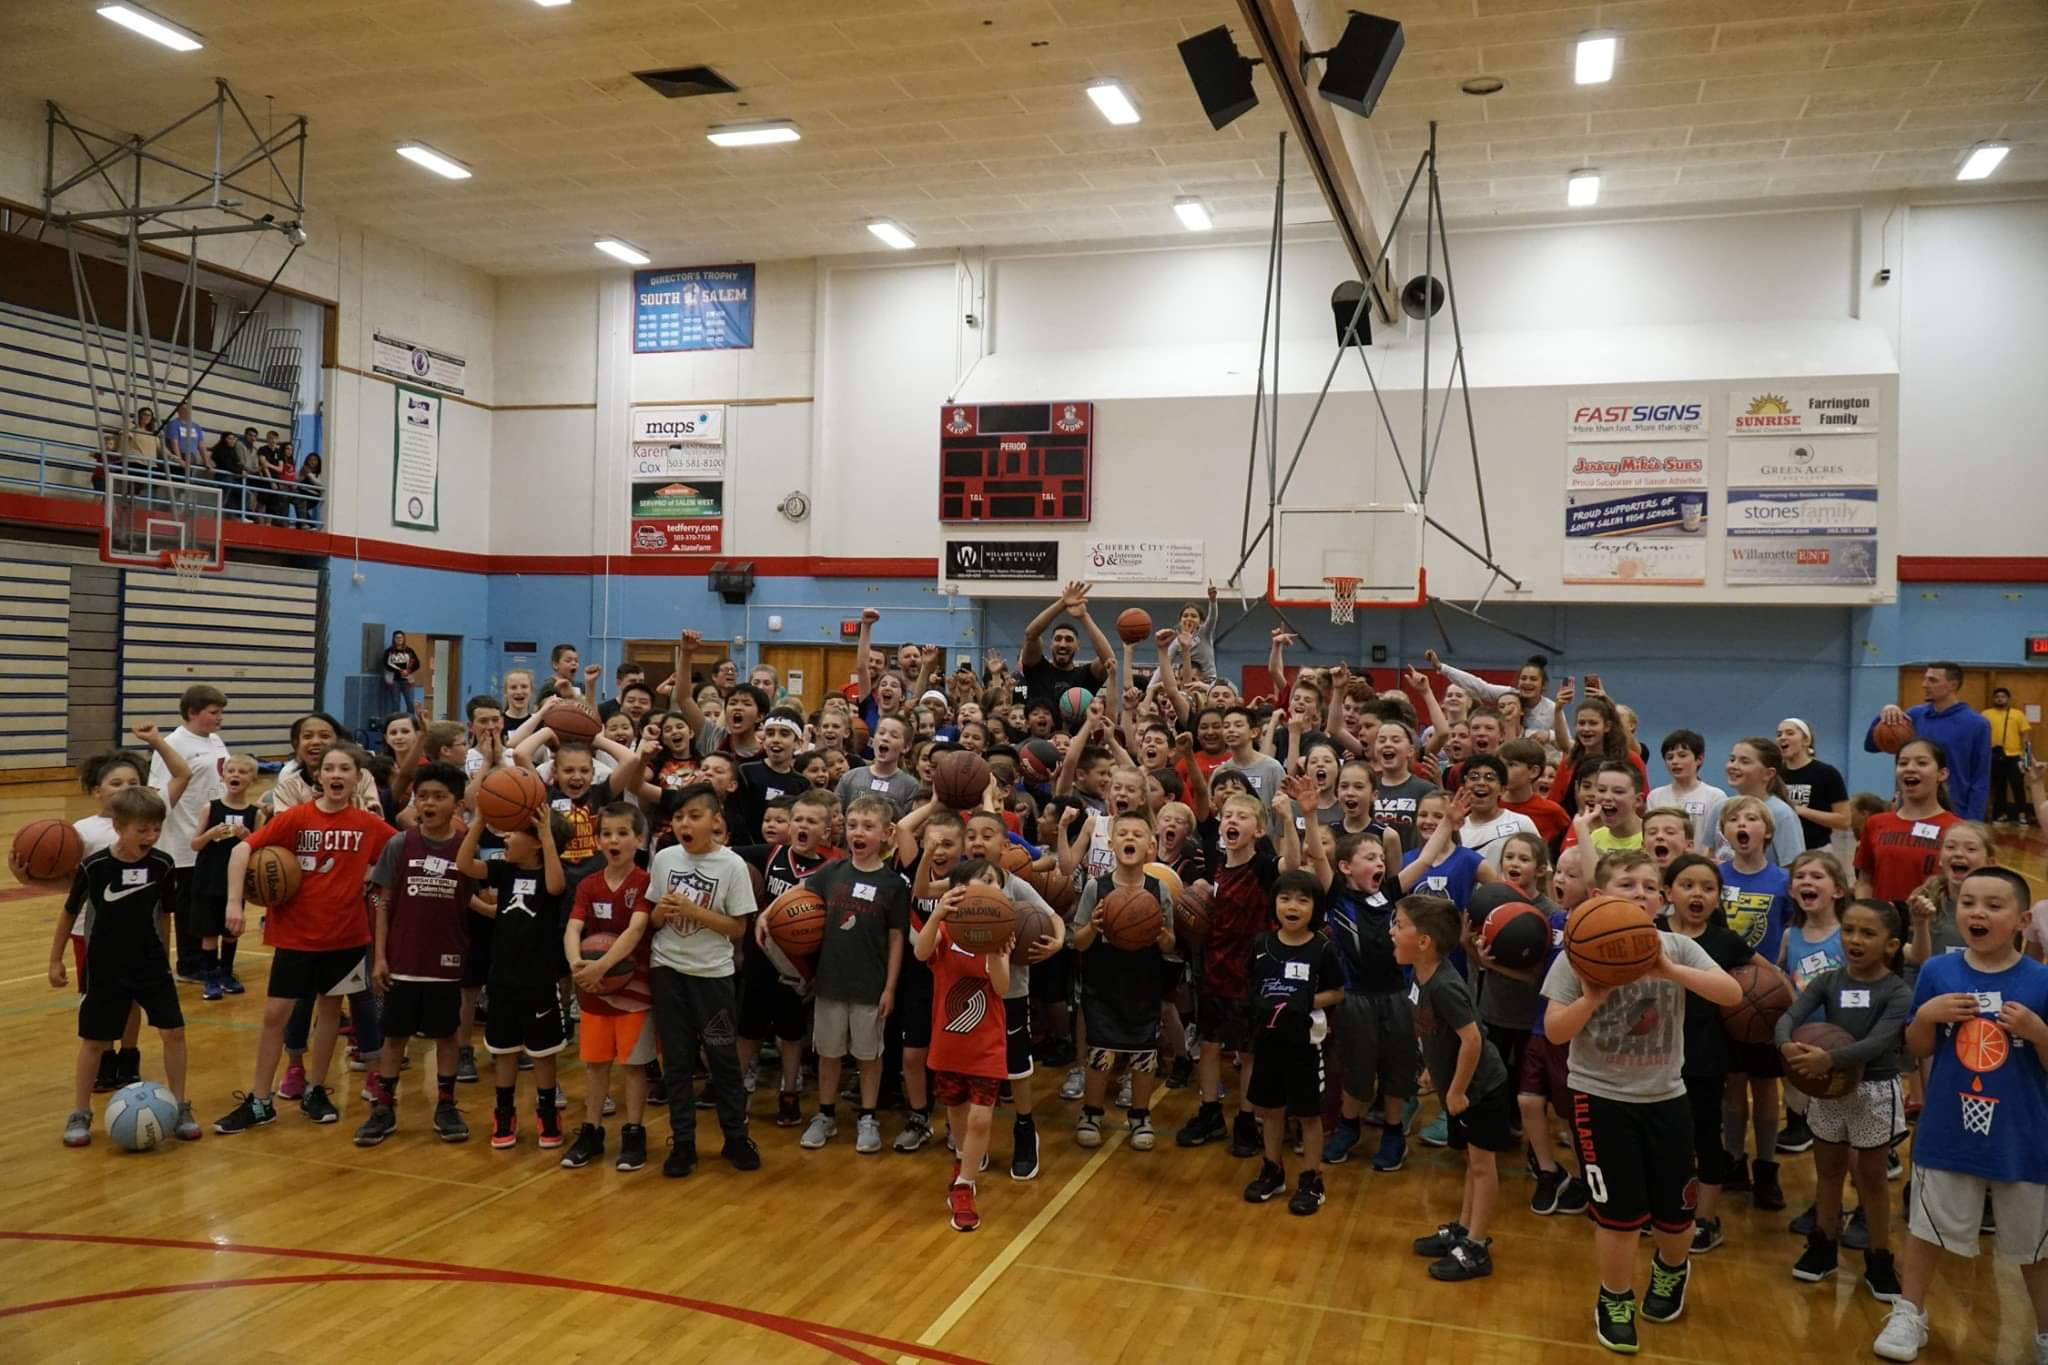 Salem Hoops Project with Enes Kanter — what a memorable night!